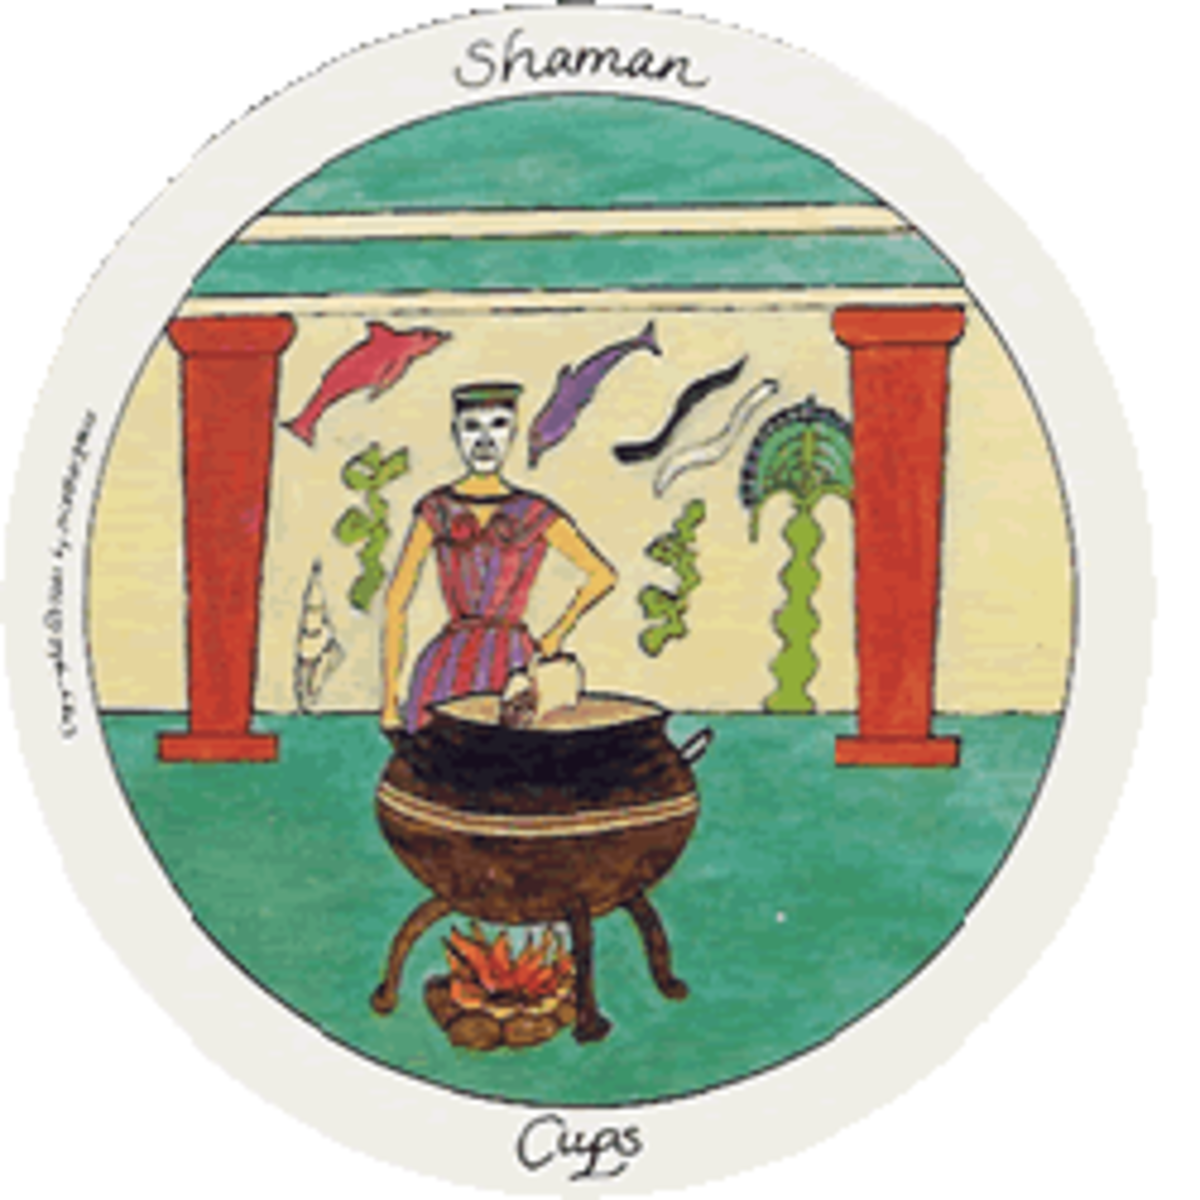 Shaman of Cups